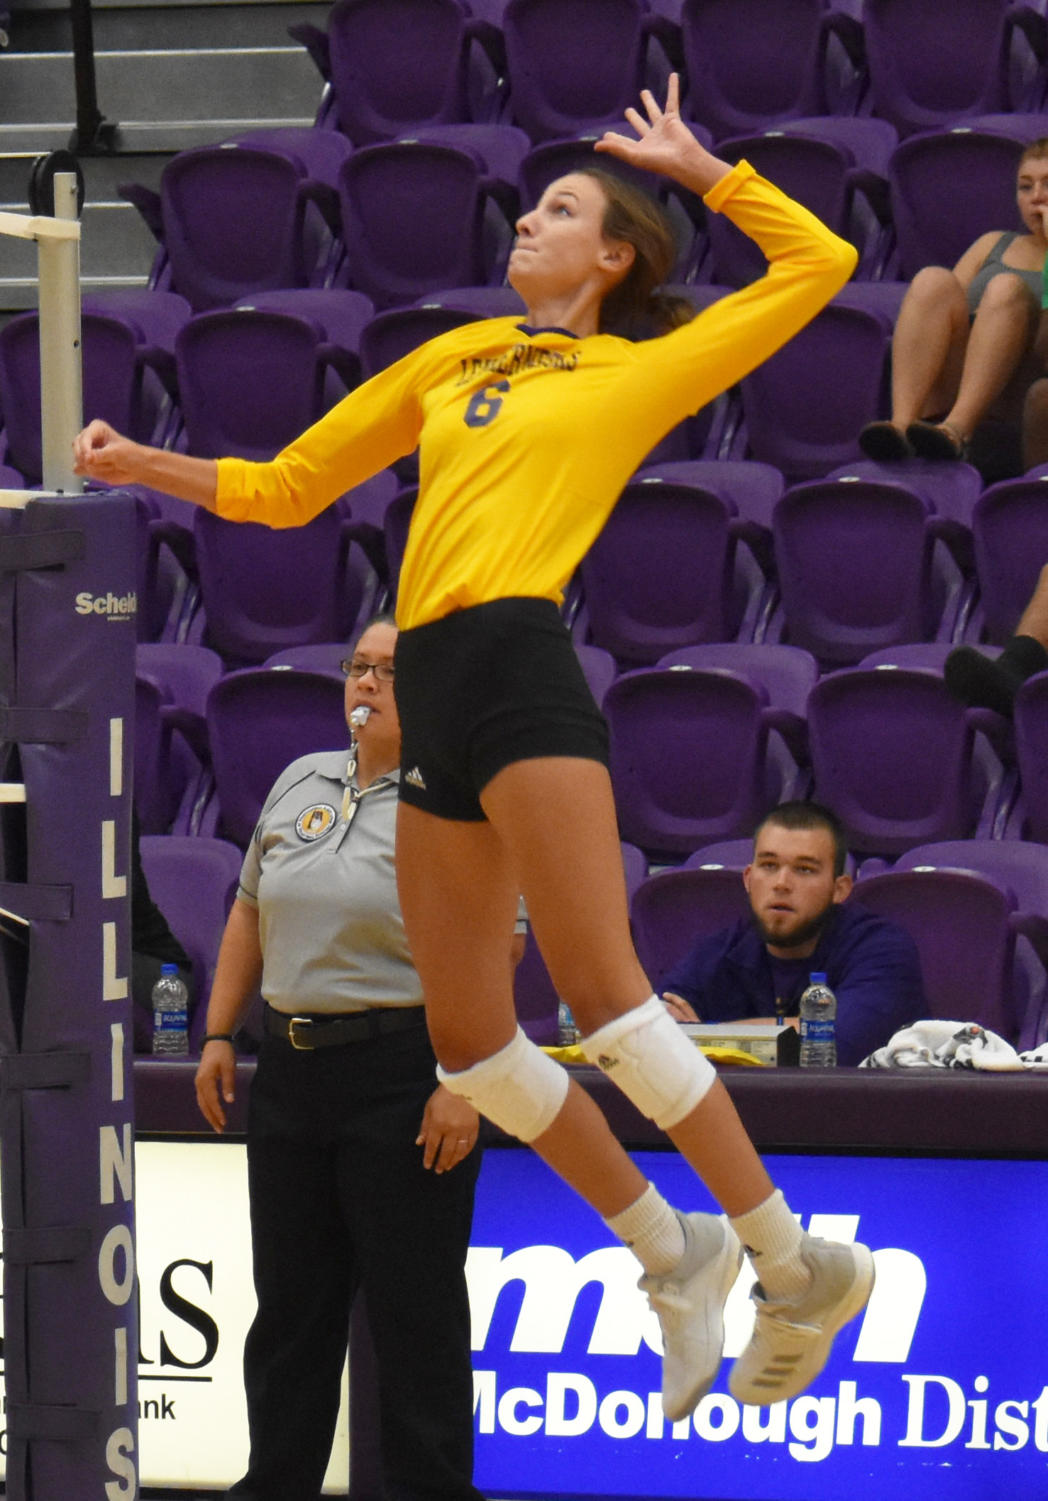 Mariah Mitcell goes up for the kill at Western Hall.